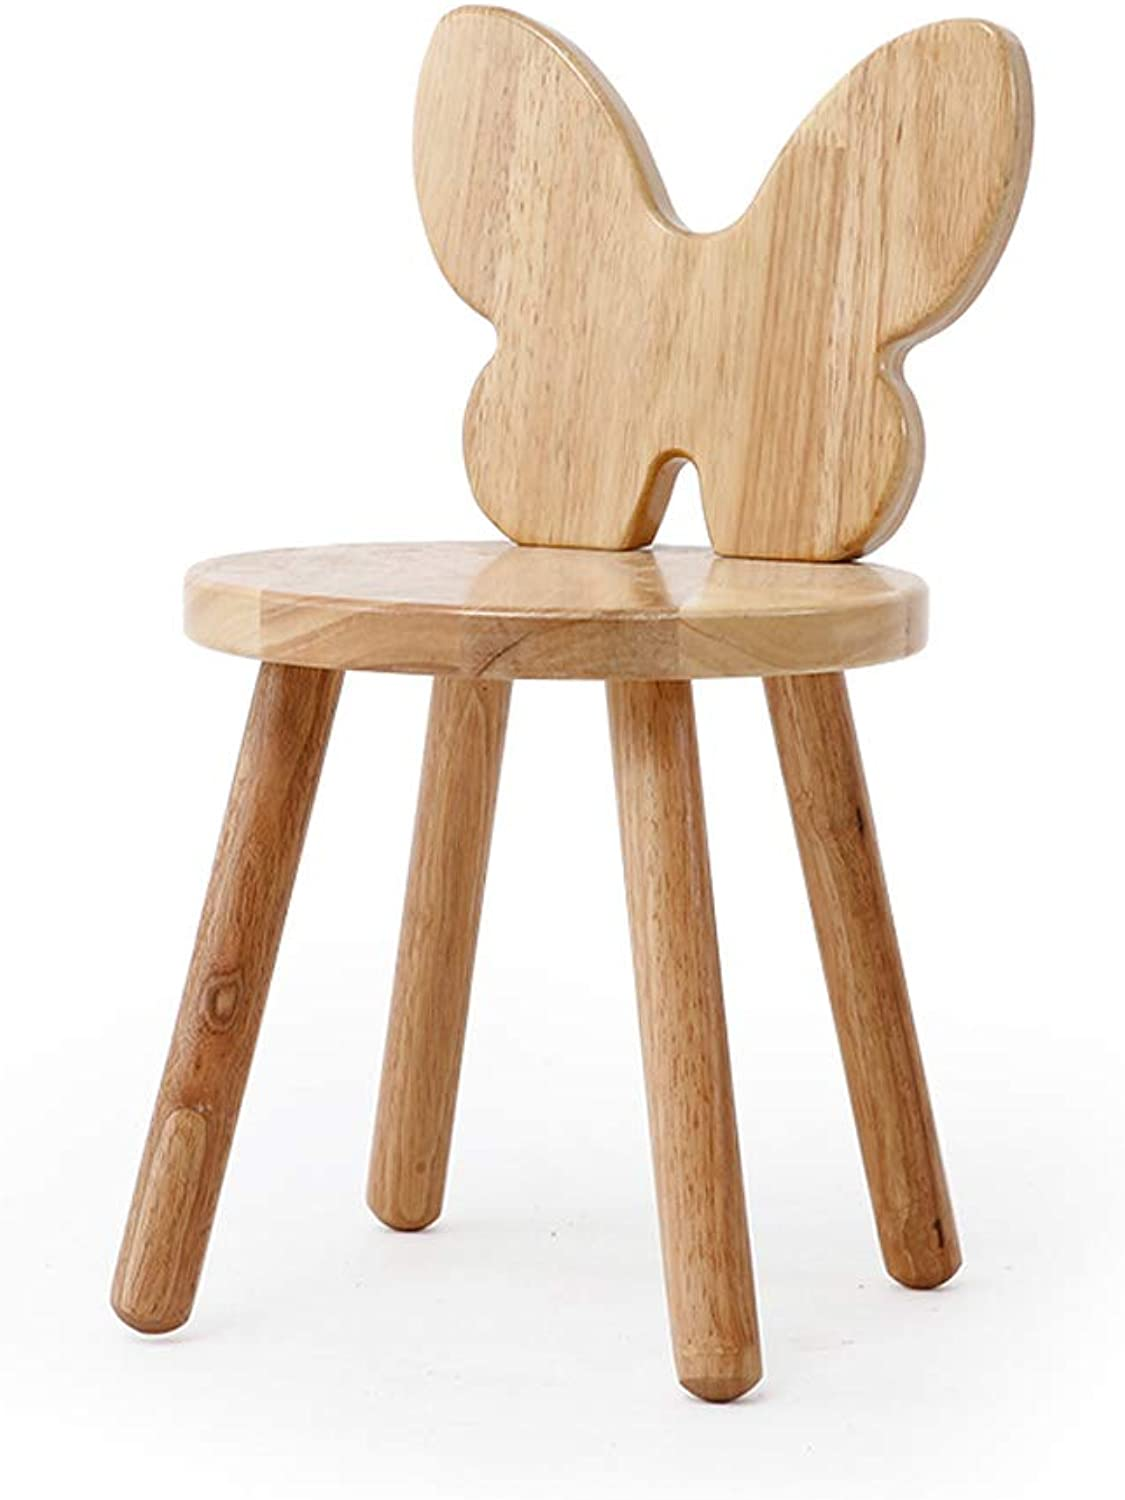 HLJ Simple Home Cartoon Stool Fashion Change shoes Bench Personality Solid Wood Small Bench Creative Chair